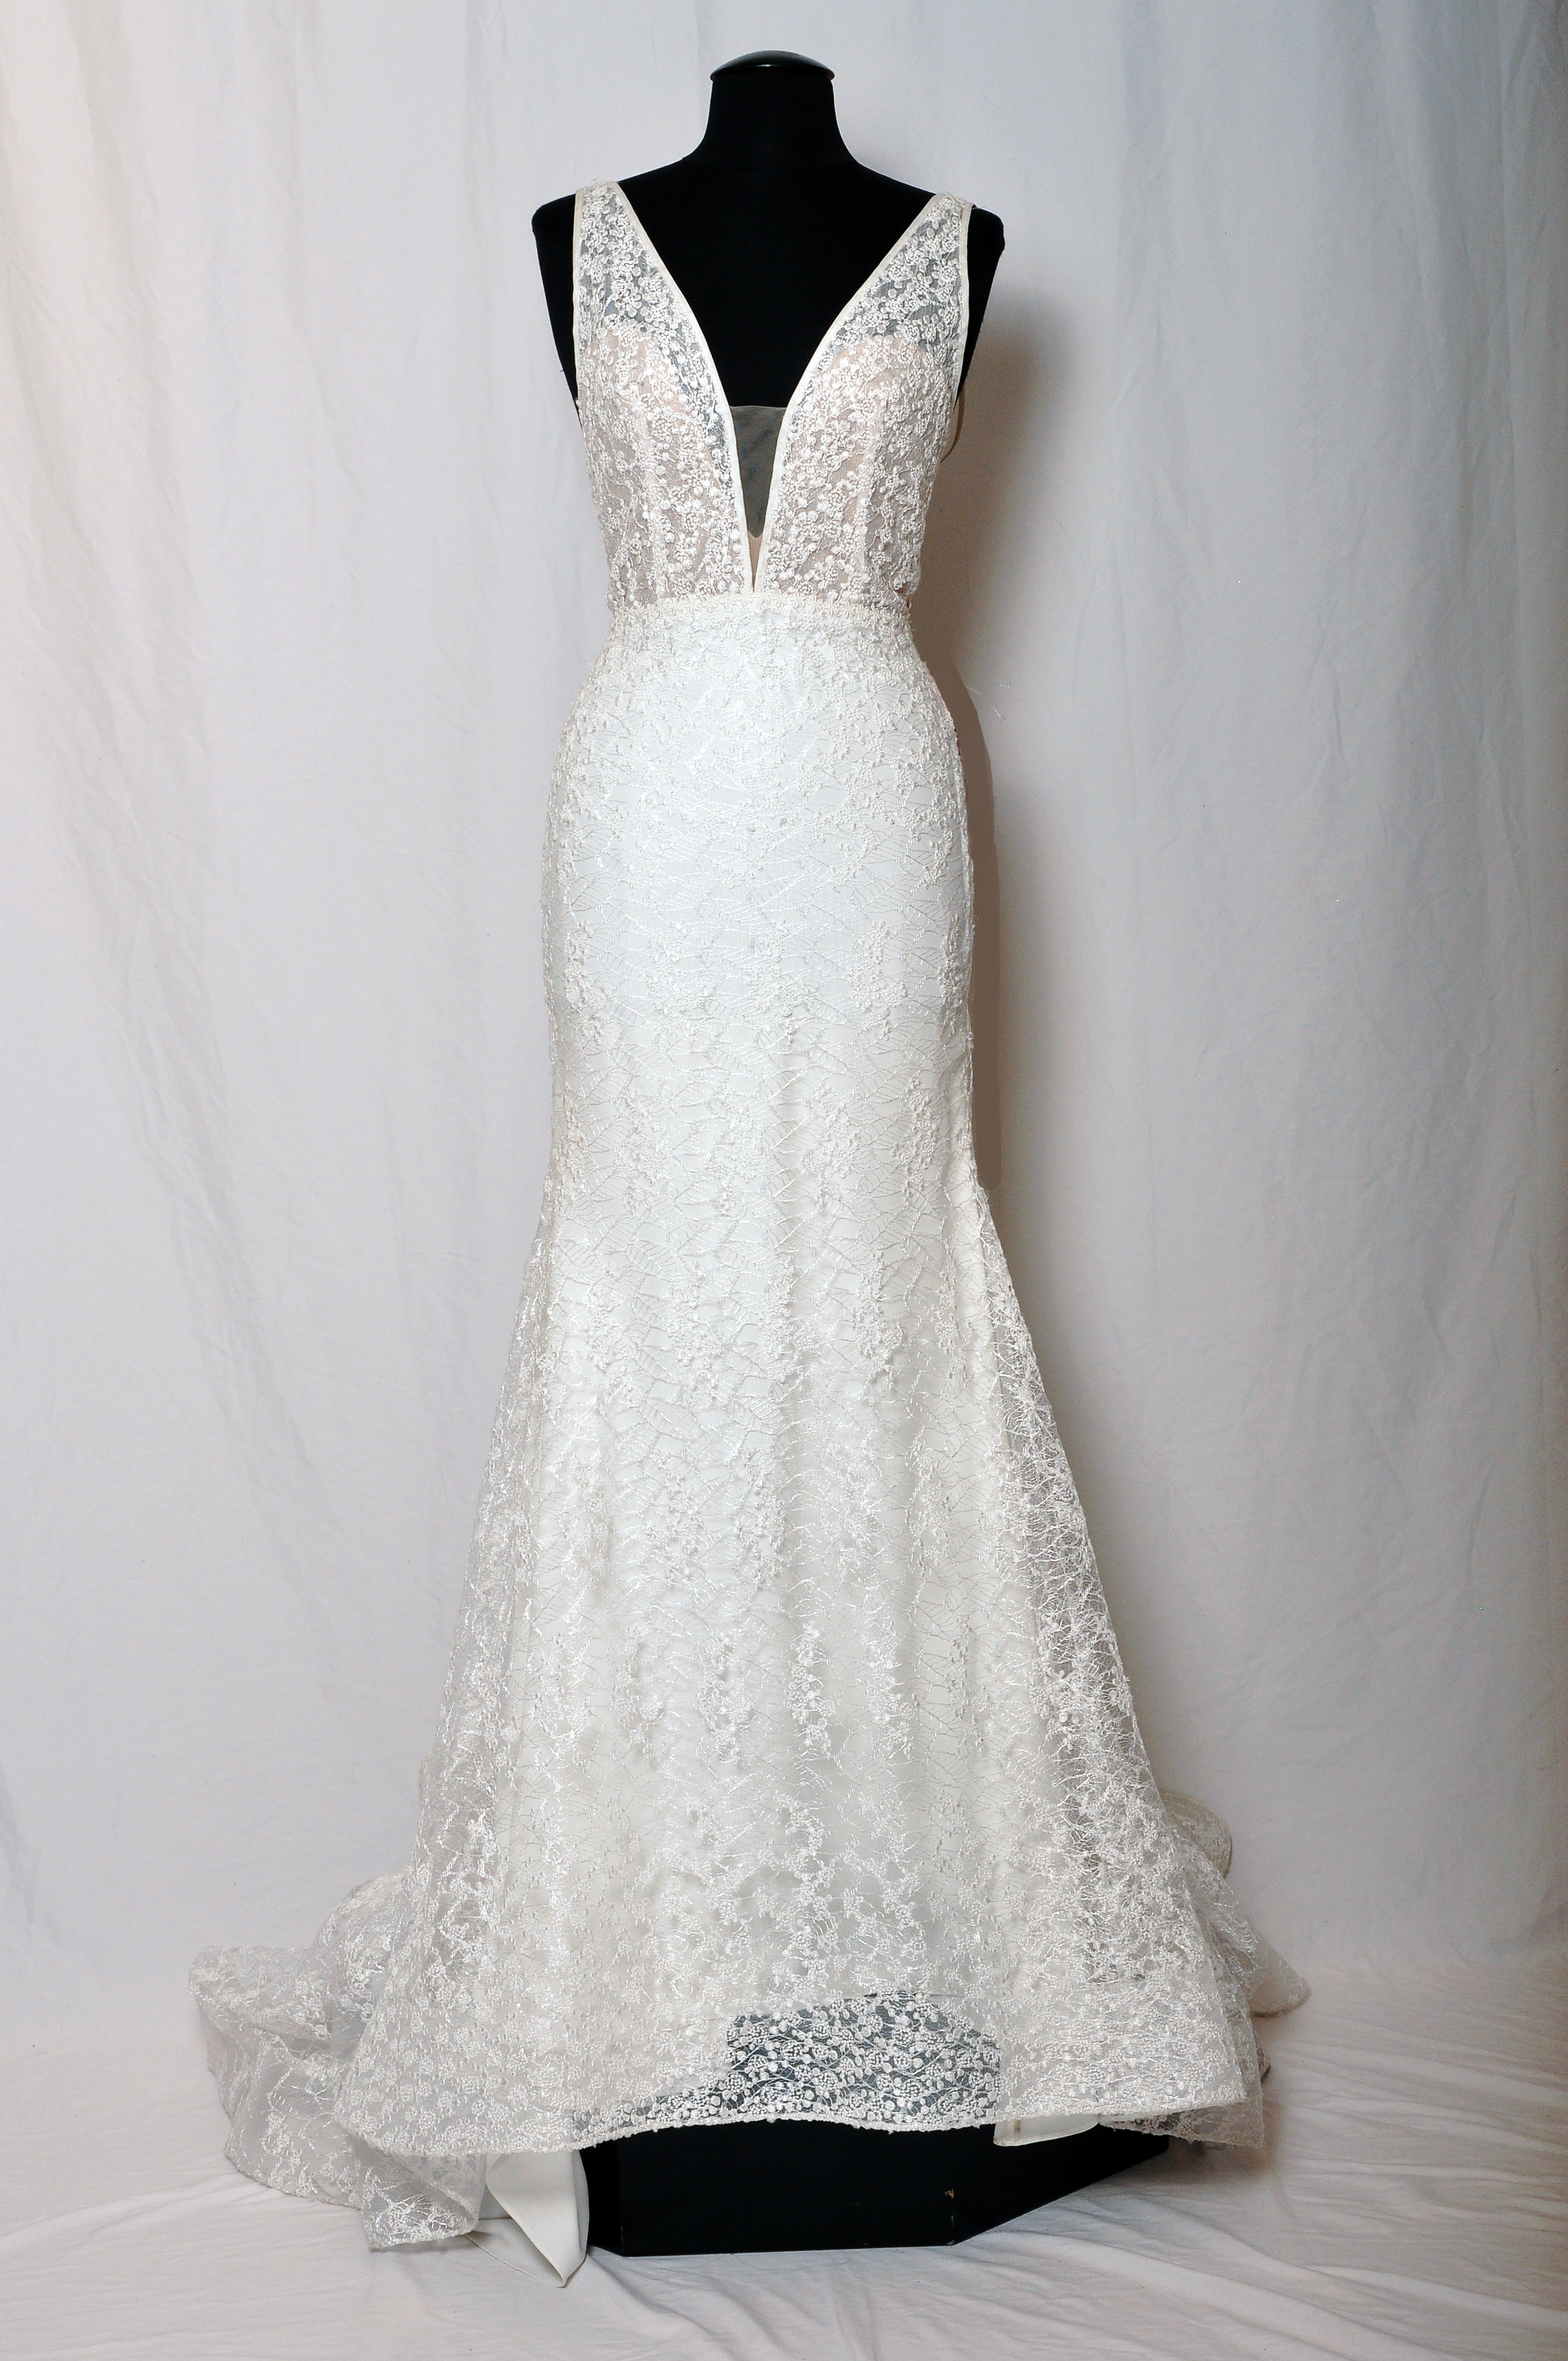 Ivory shimmer lace sheath gown, deep v plunging neckline with nude side cut outs on bodice, nude illusion back v neckline, slim skirt and chapel train.